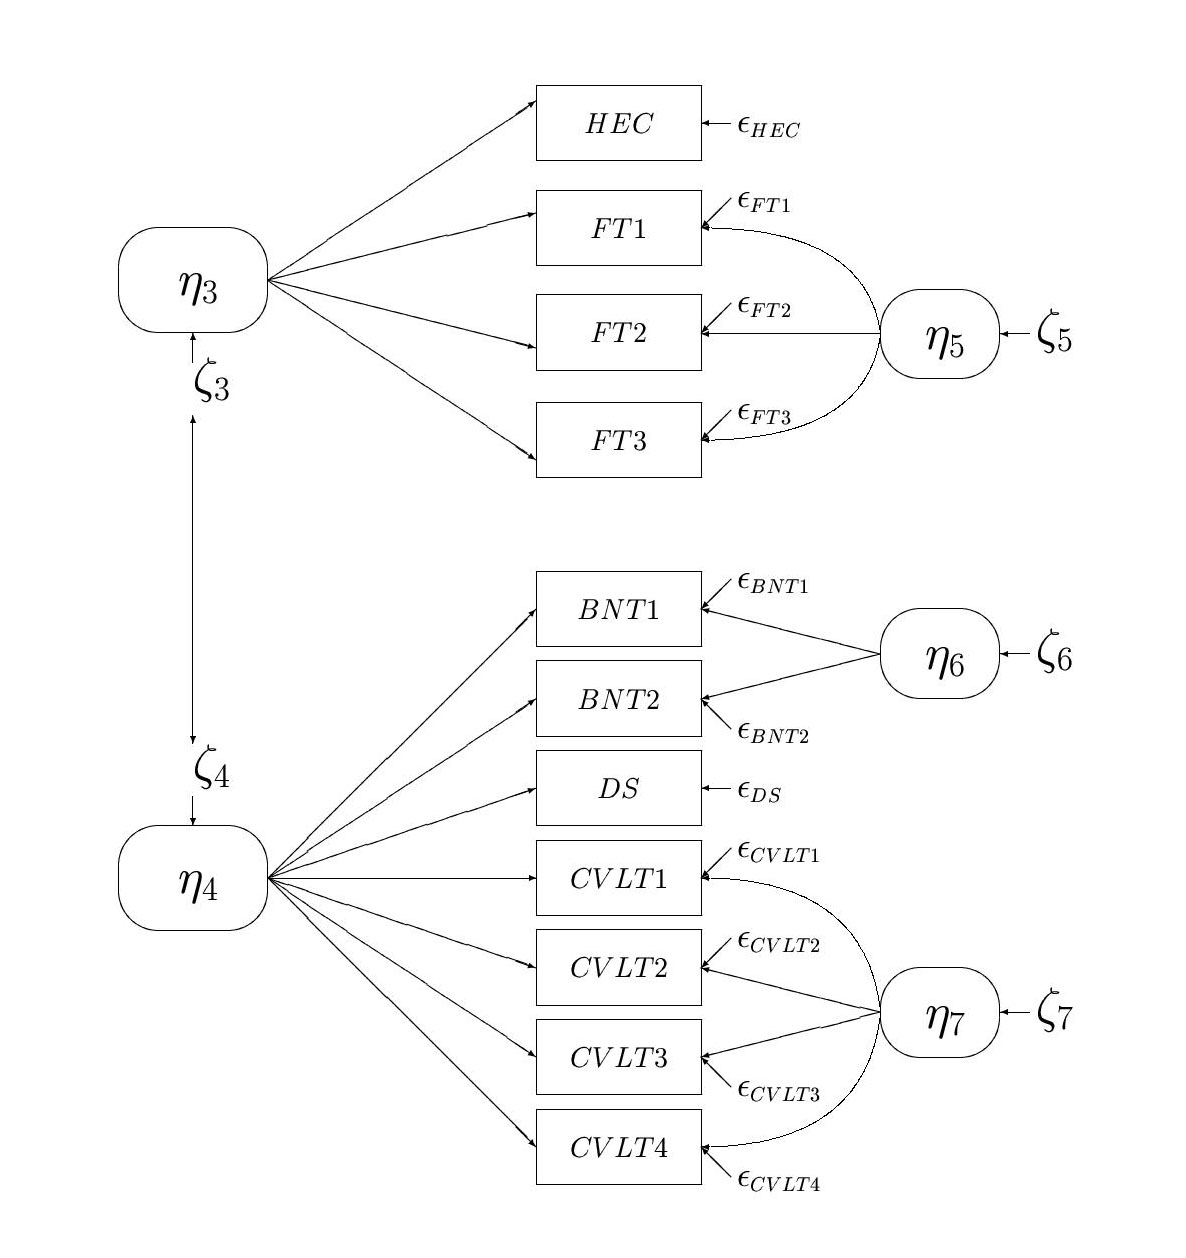 https://static-content.springer.com/image/art%3A10.1186%2F1476-069X-1-2/MediaObjects/12940_2002_Article_2_Fig2_HTML.jpg